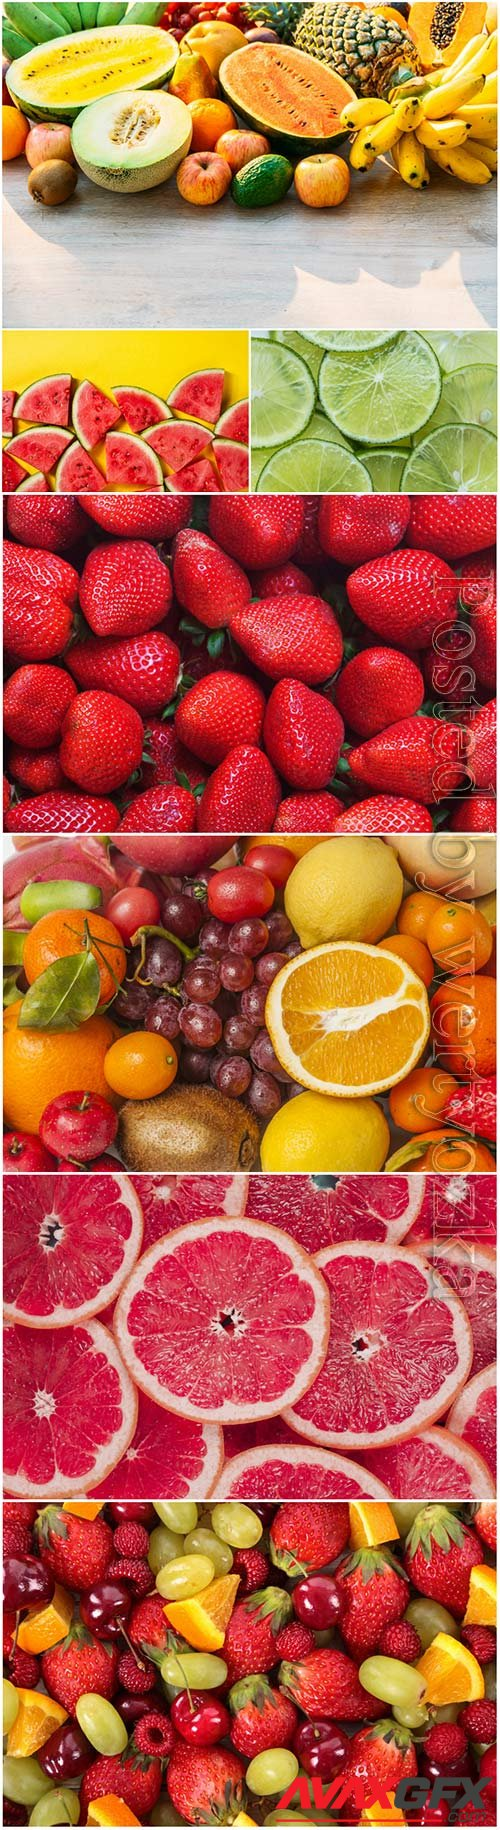 Fresh tasty berries, fruits and citrus stock photo